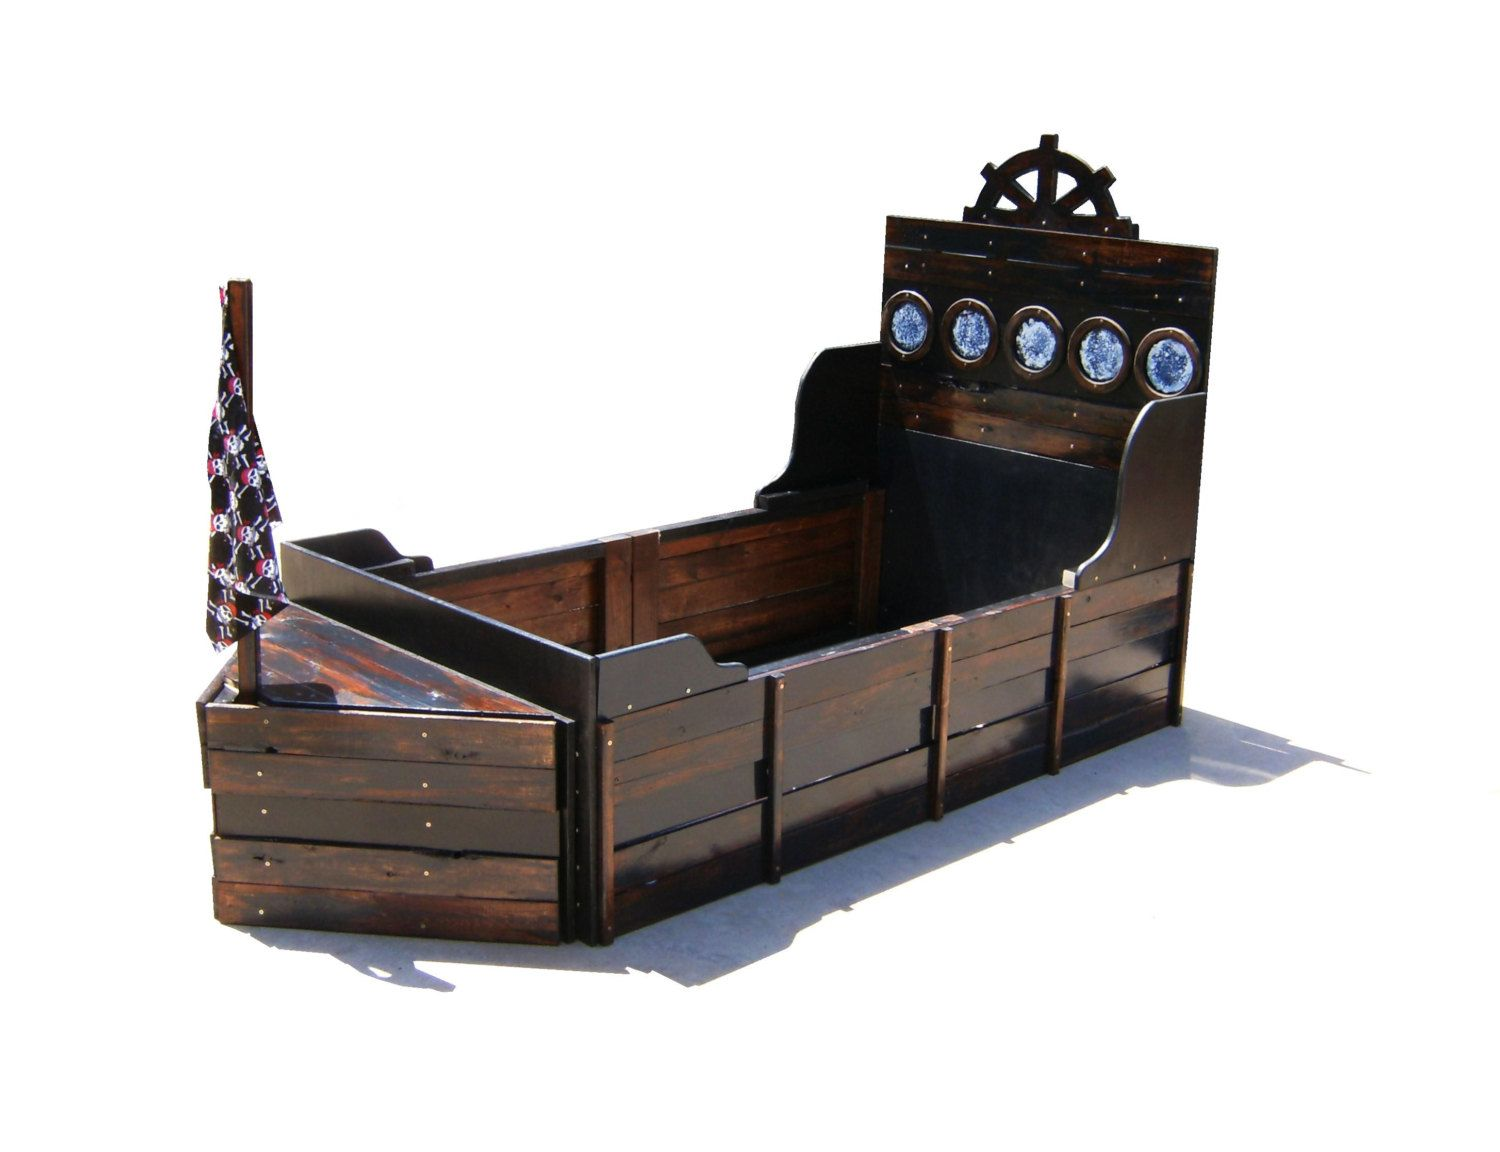 Pirate Bedroom Furniture Pirate Ship Bed Rustic Pirate Bed Twin Size Bed By Inxyle On Etsy